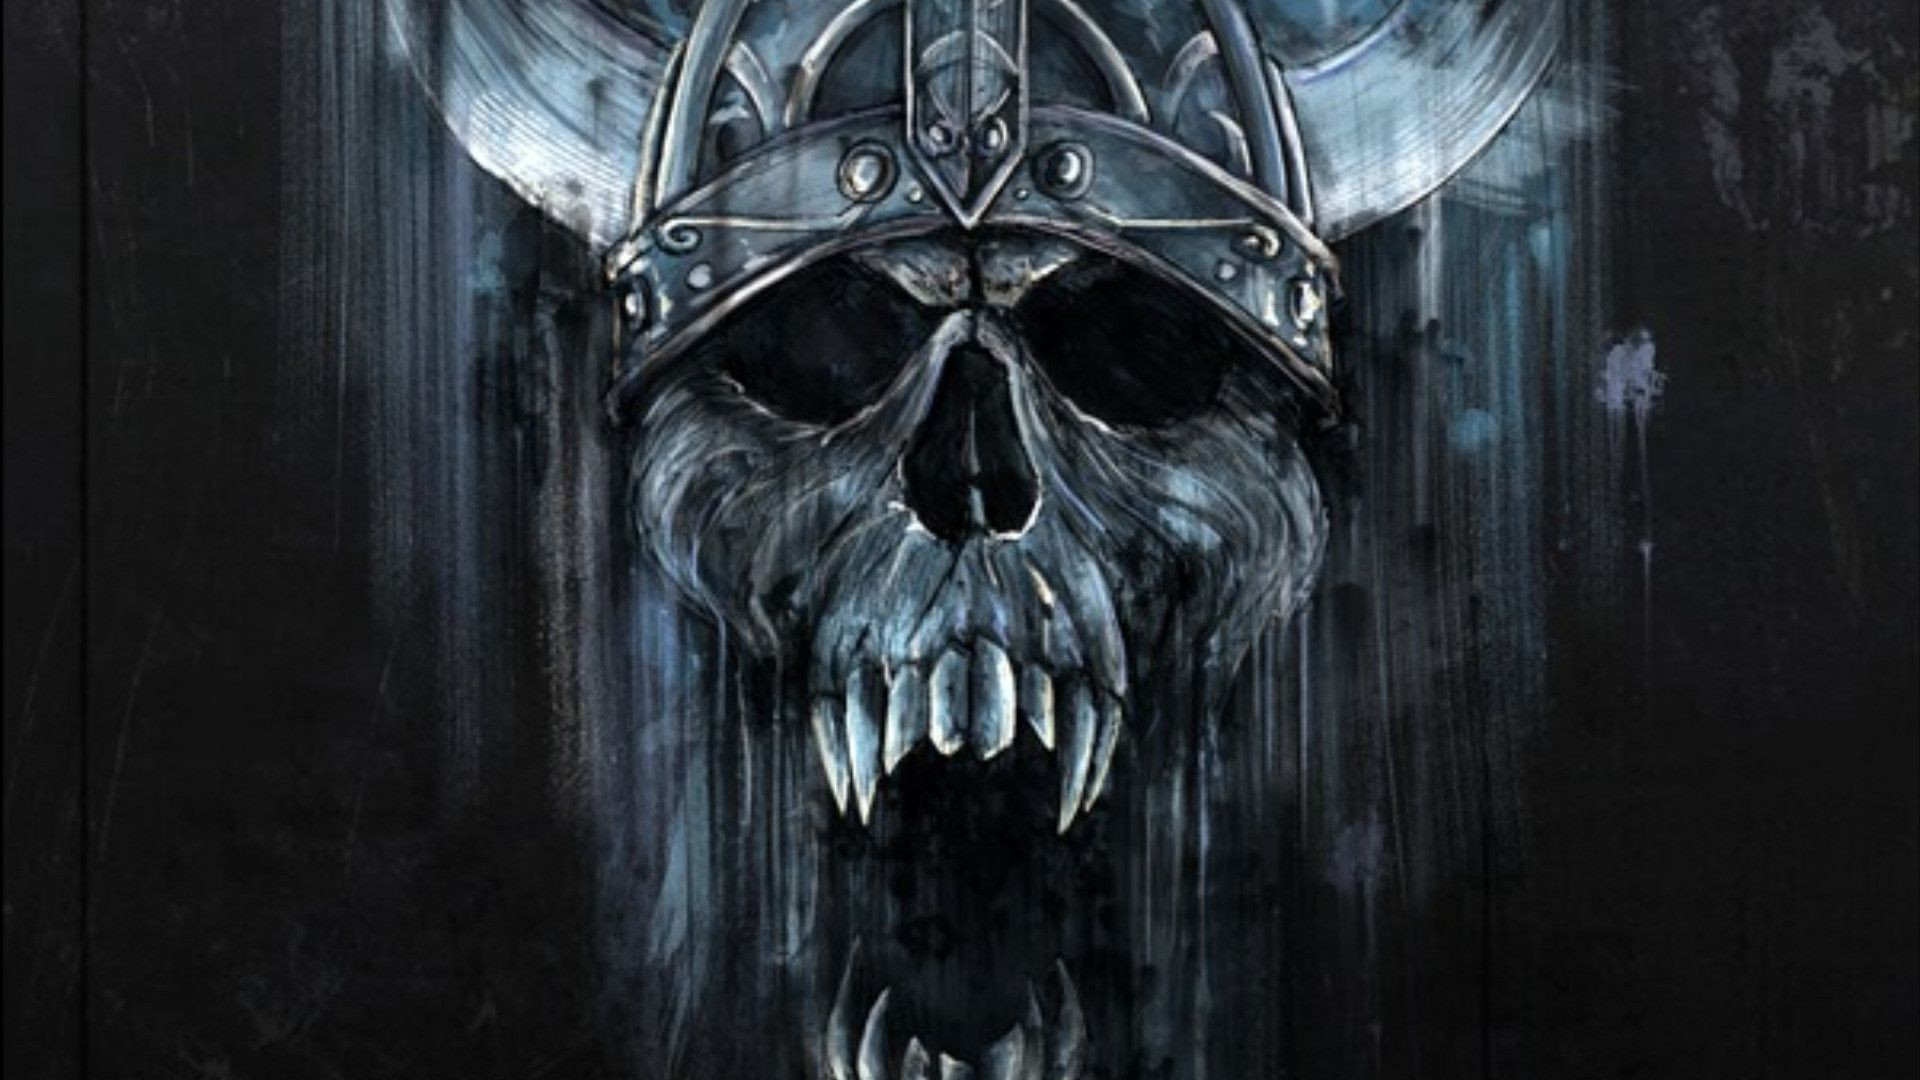 1920x1080 Cool Skull Wallpapers Jpg  C2 B7 Download  C2 B7 Awesome